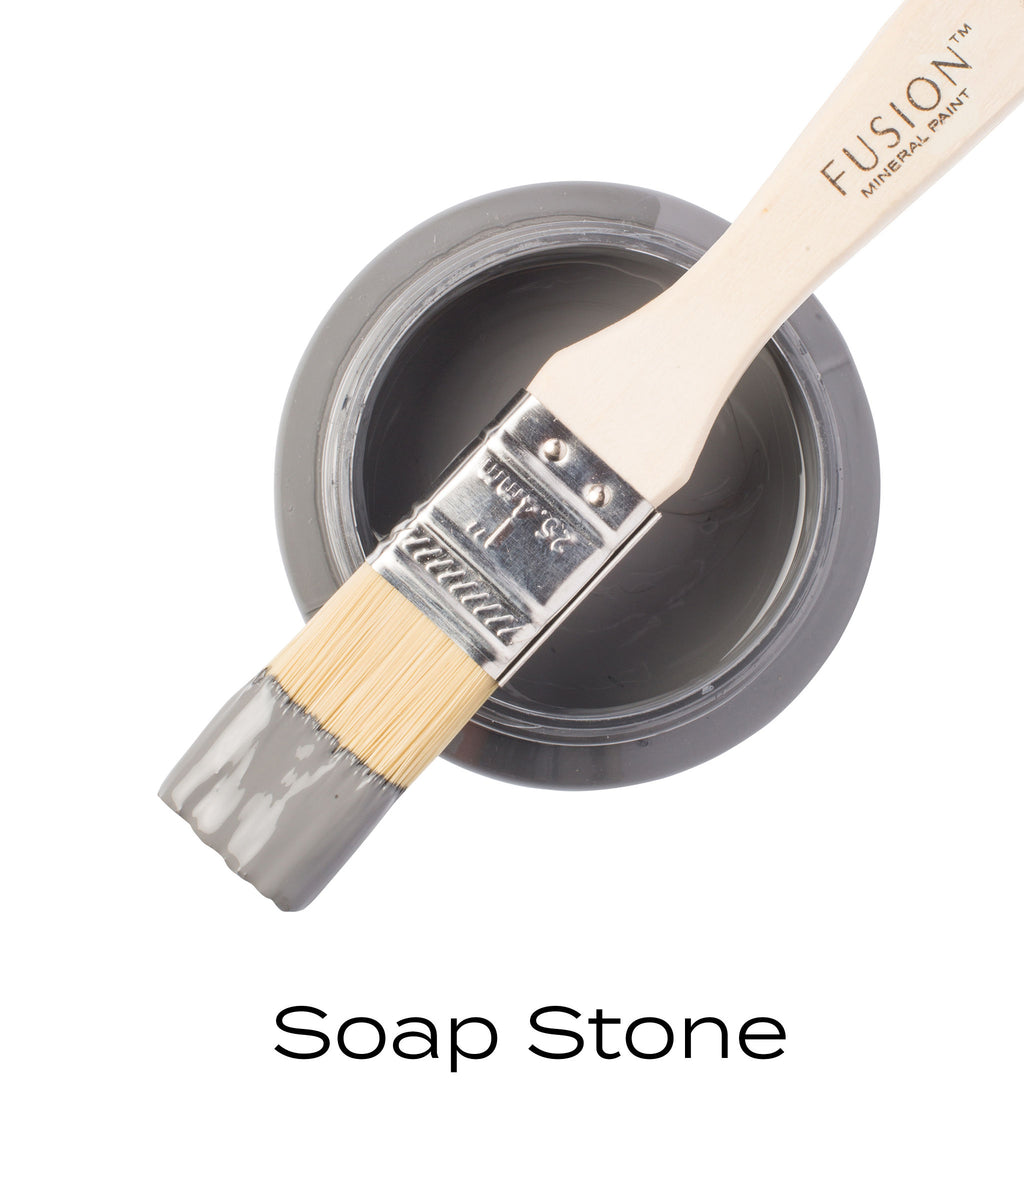 Soapstone Fusion Mineral Paint Near Me